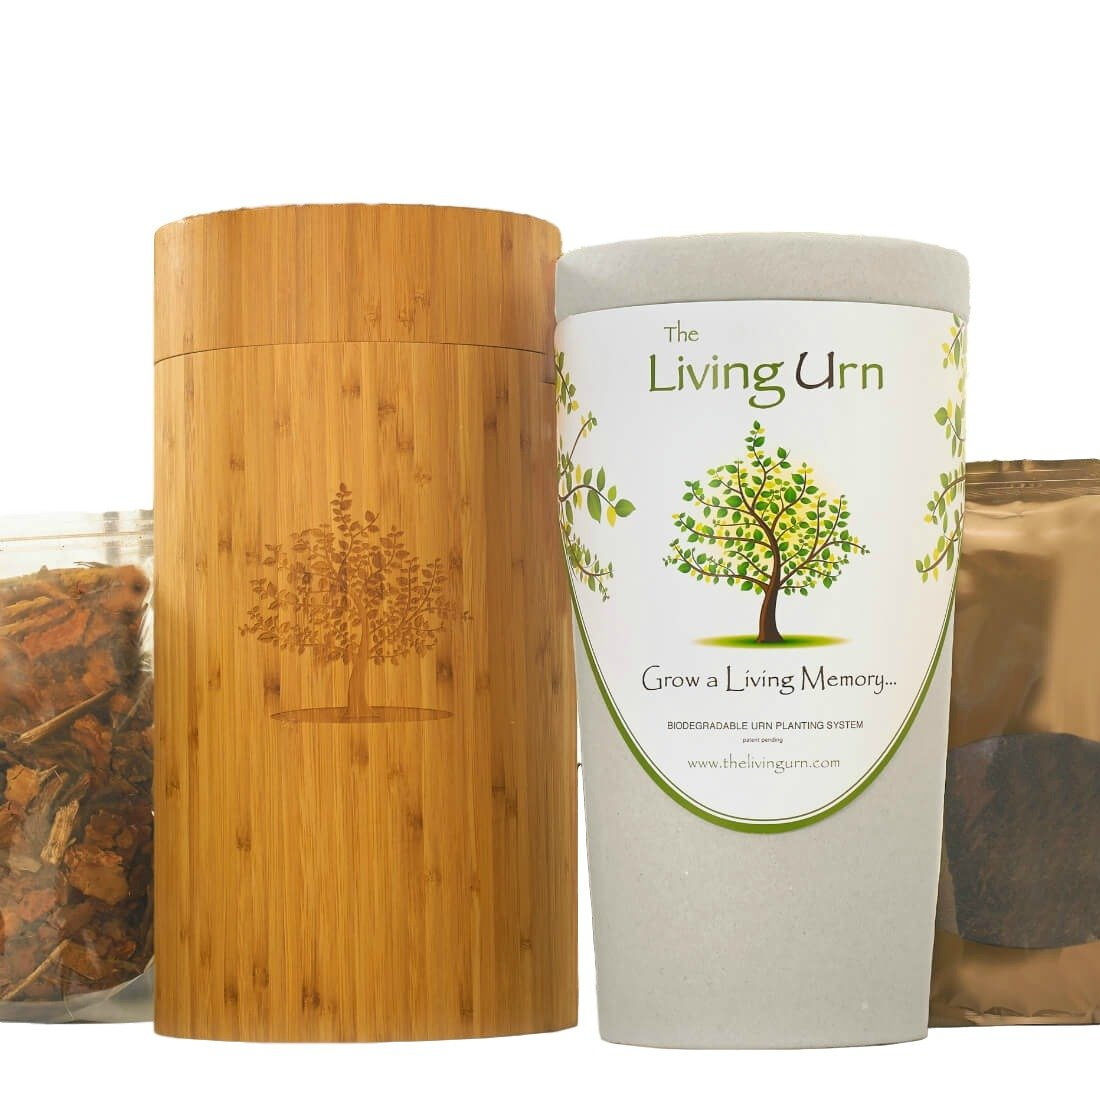 The Living Urn Bio Urn and Planting System for People. Grow a Living Memory Tree, Plant, or Flowers from the Ashes of a Loved One. 100% Biodegradable (this version does not come with a tree seedling) by The Living Urn for People